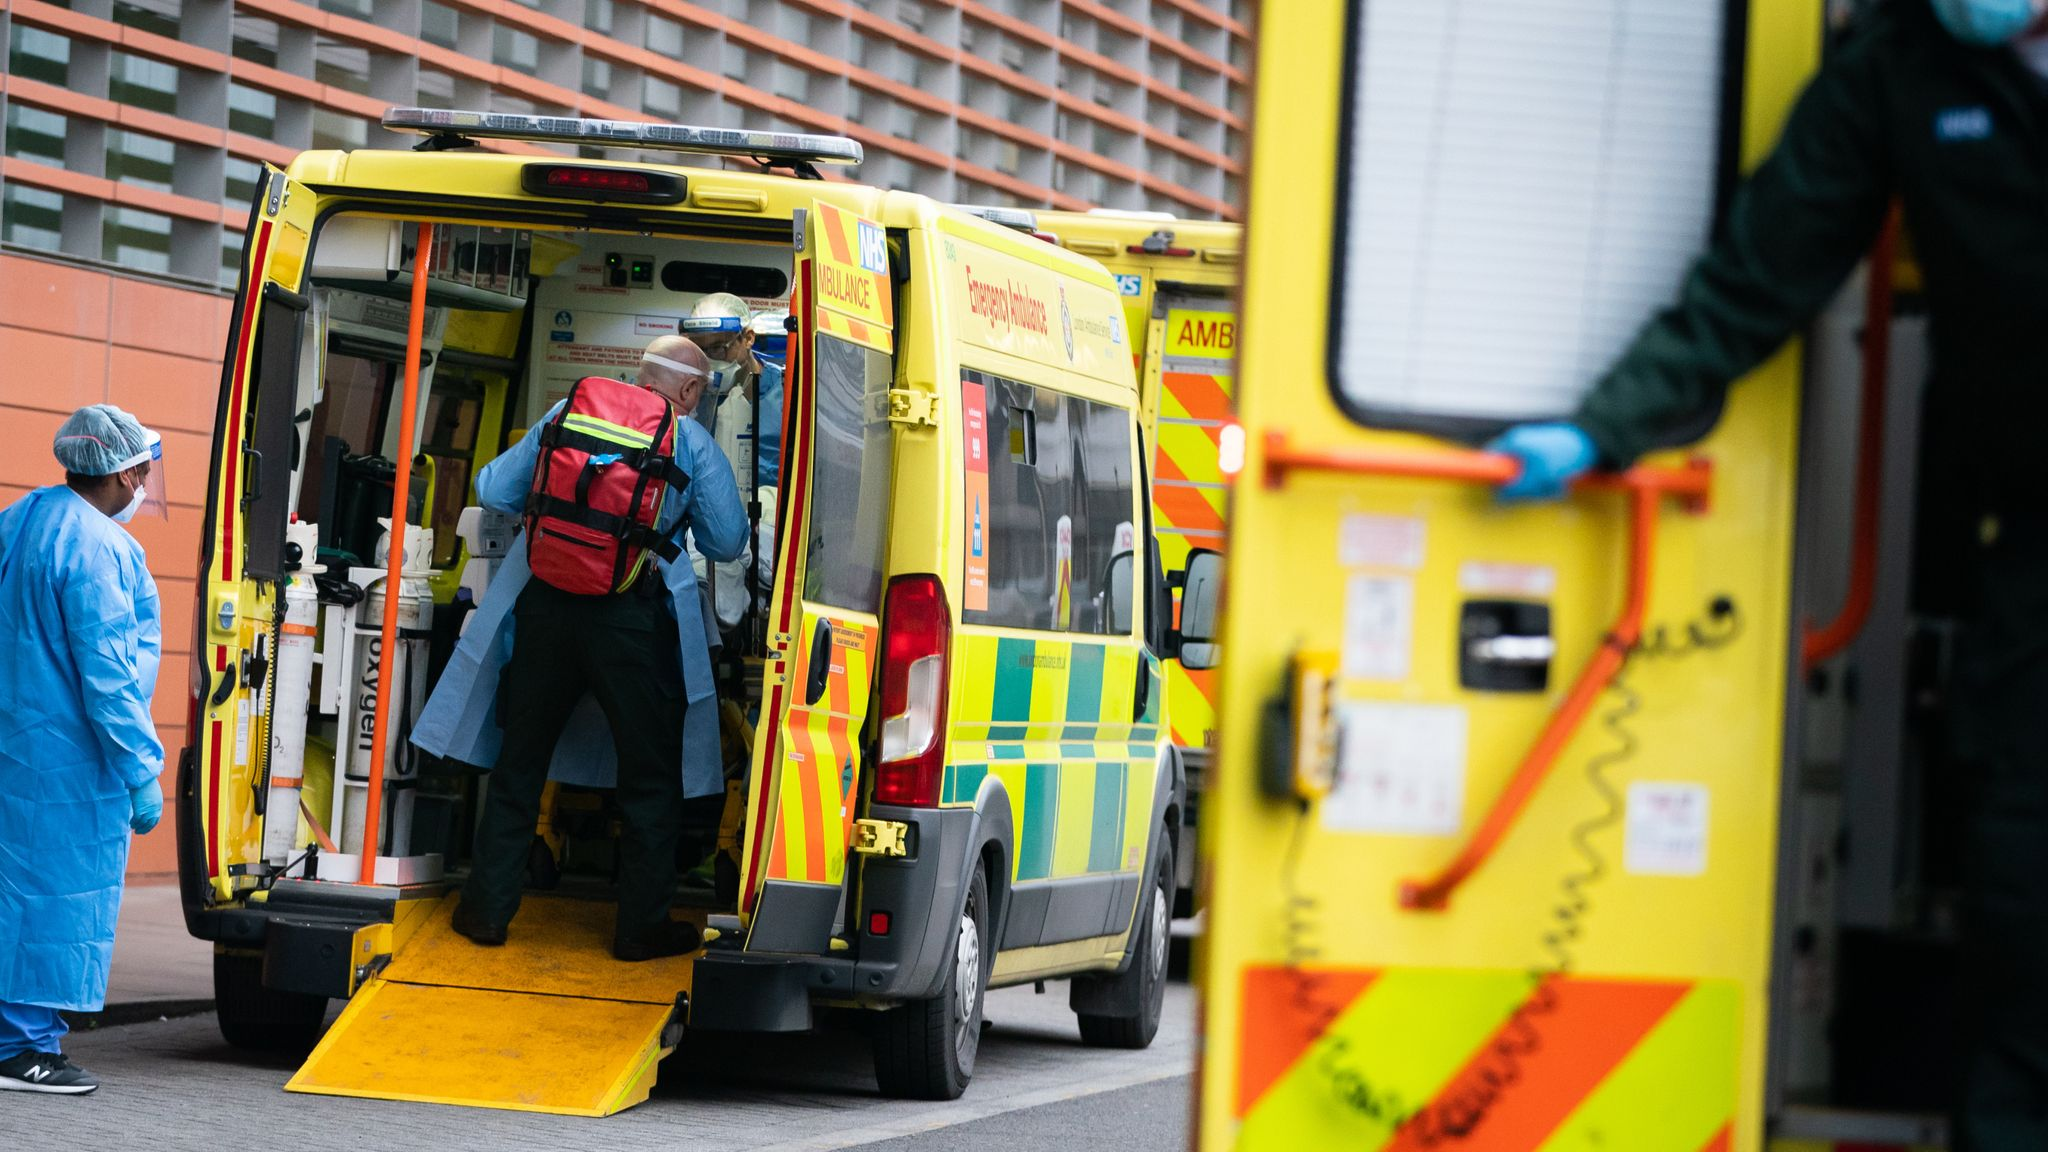 COVID-19: UK hits highest ever daily reported deaths, with 1,325 fatalities